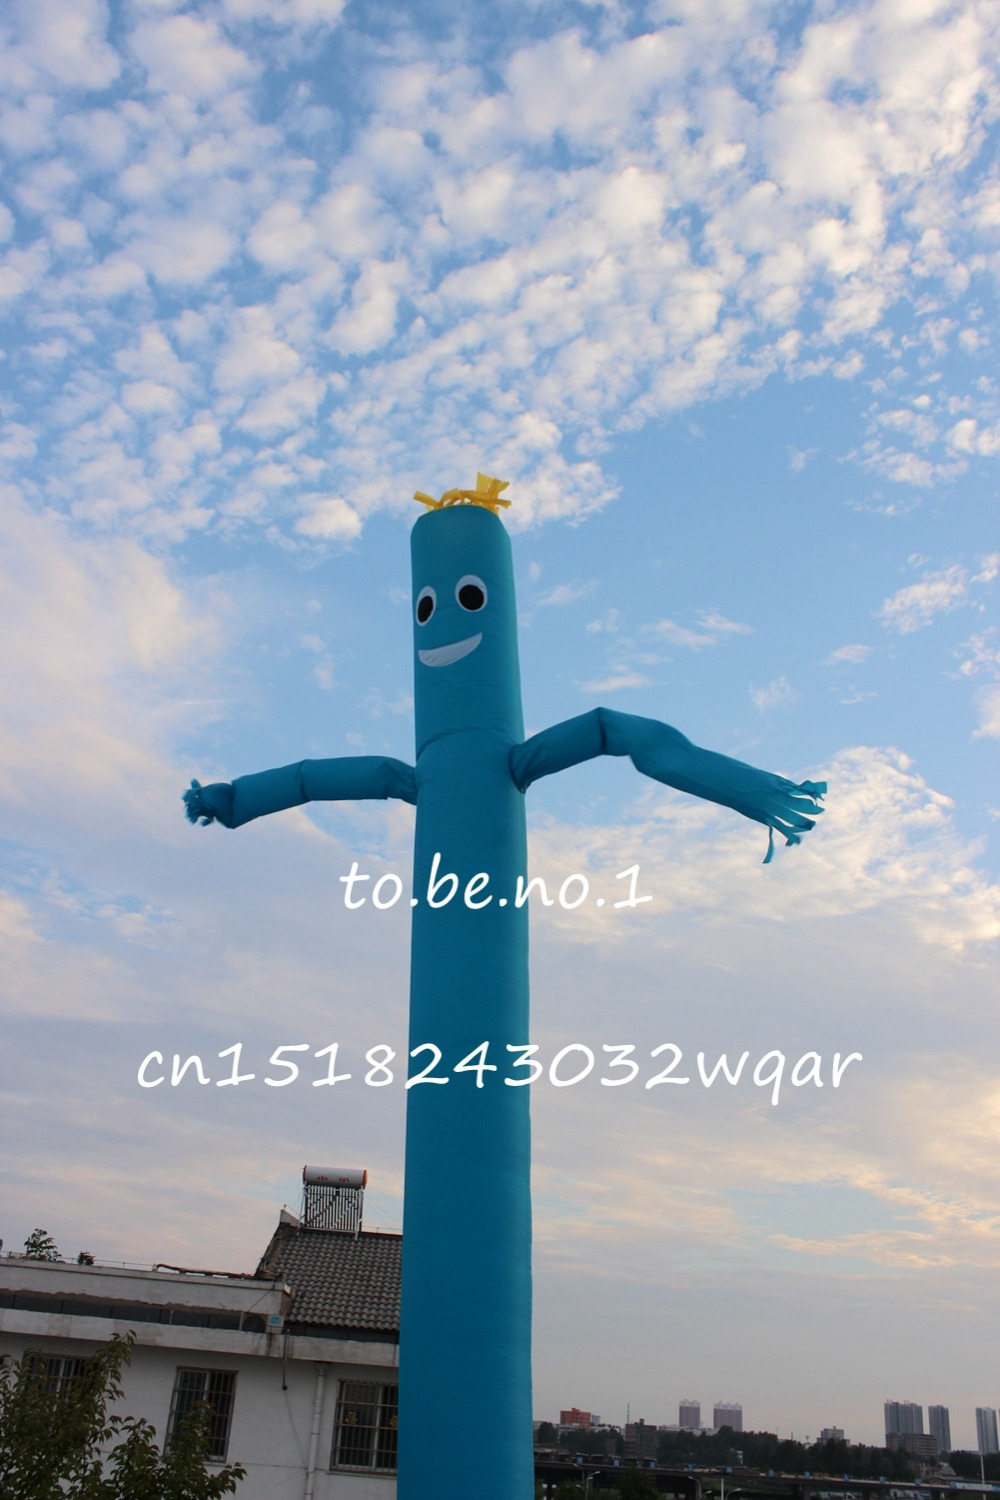 Inflatable Toys 6M 20FT Inflatable Tube Sky Dancer Air Dancer NO blower Inflatable Toys Shop ads sign ZS-006 цена и фото